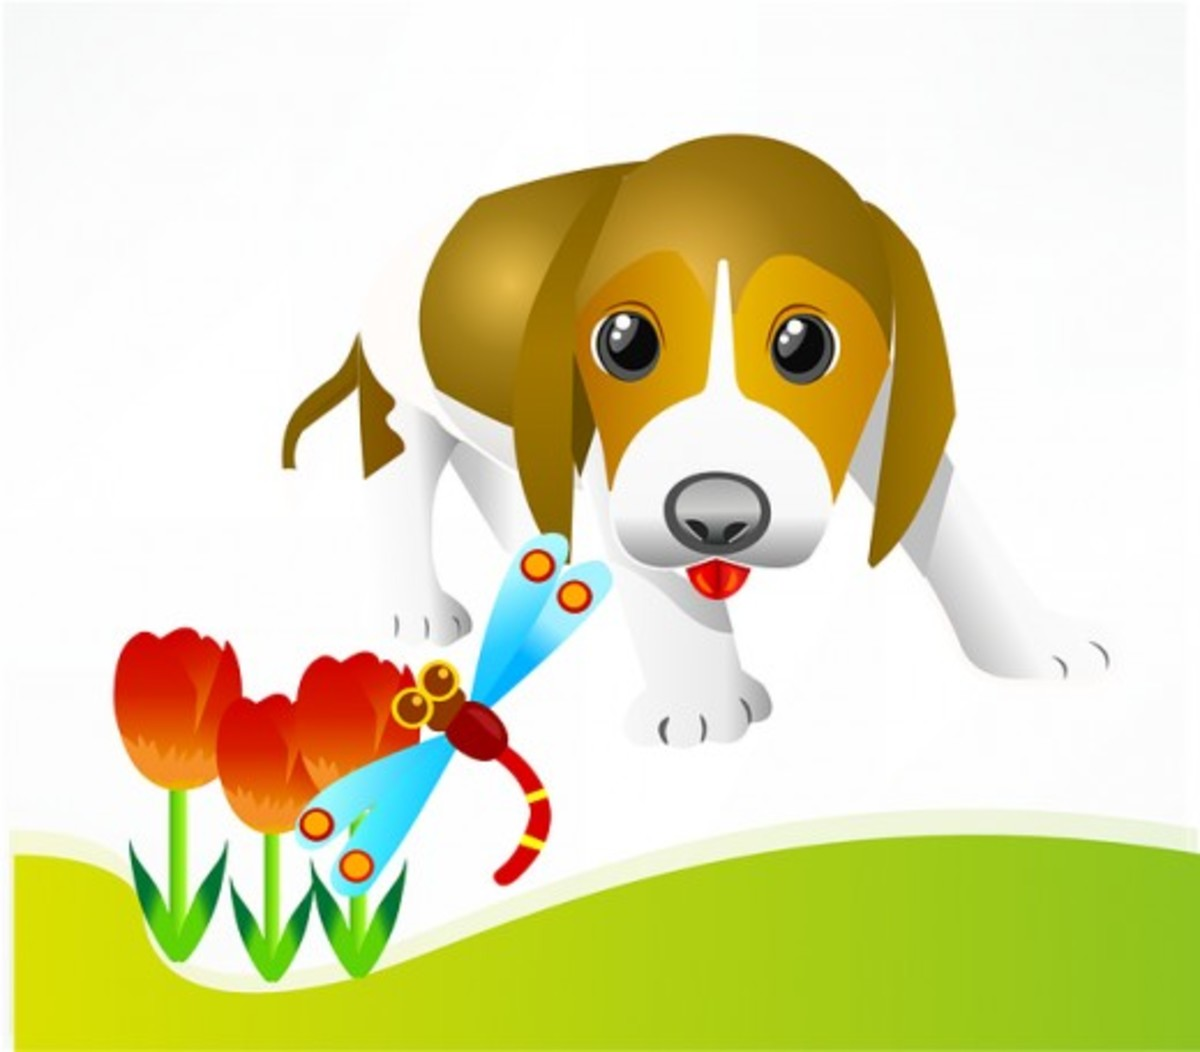 Puppy with Tulips and Dragonfly